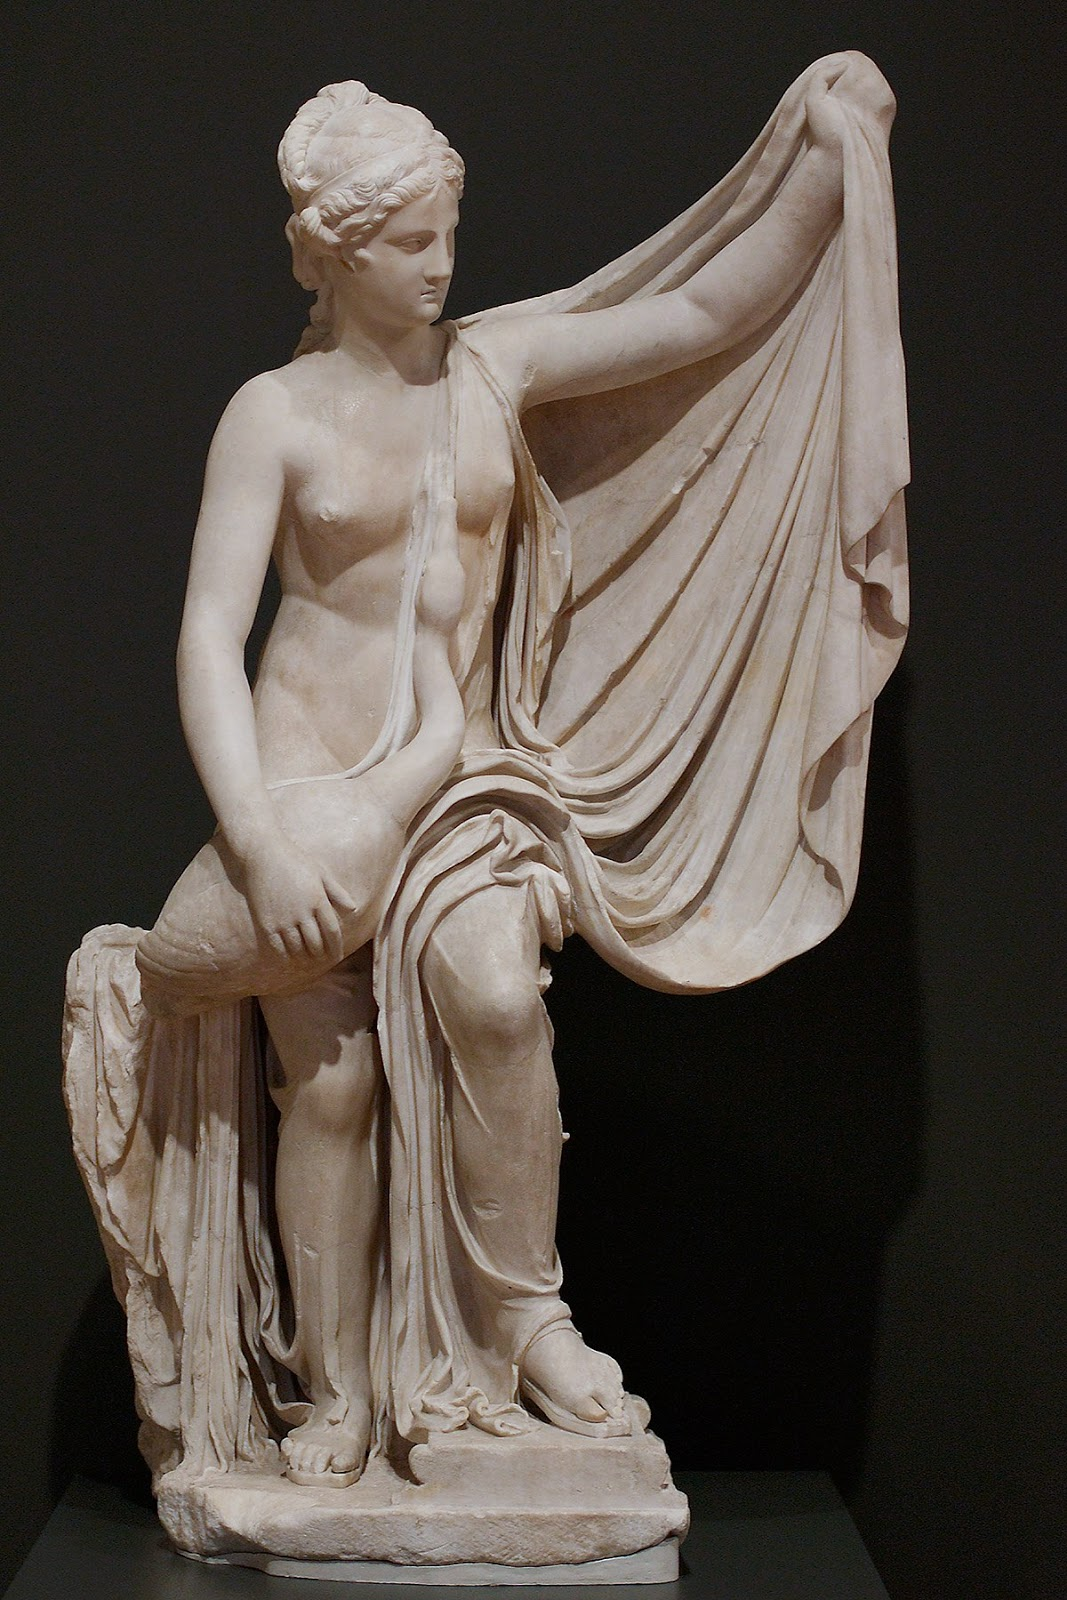 getty-sculpture-leda-roman-1st-cent-ad.jpg